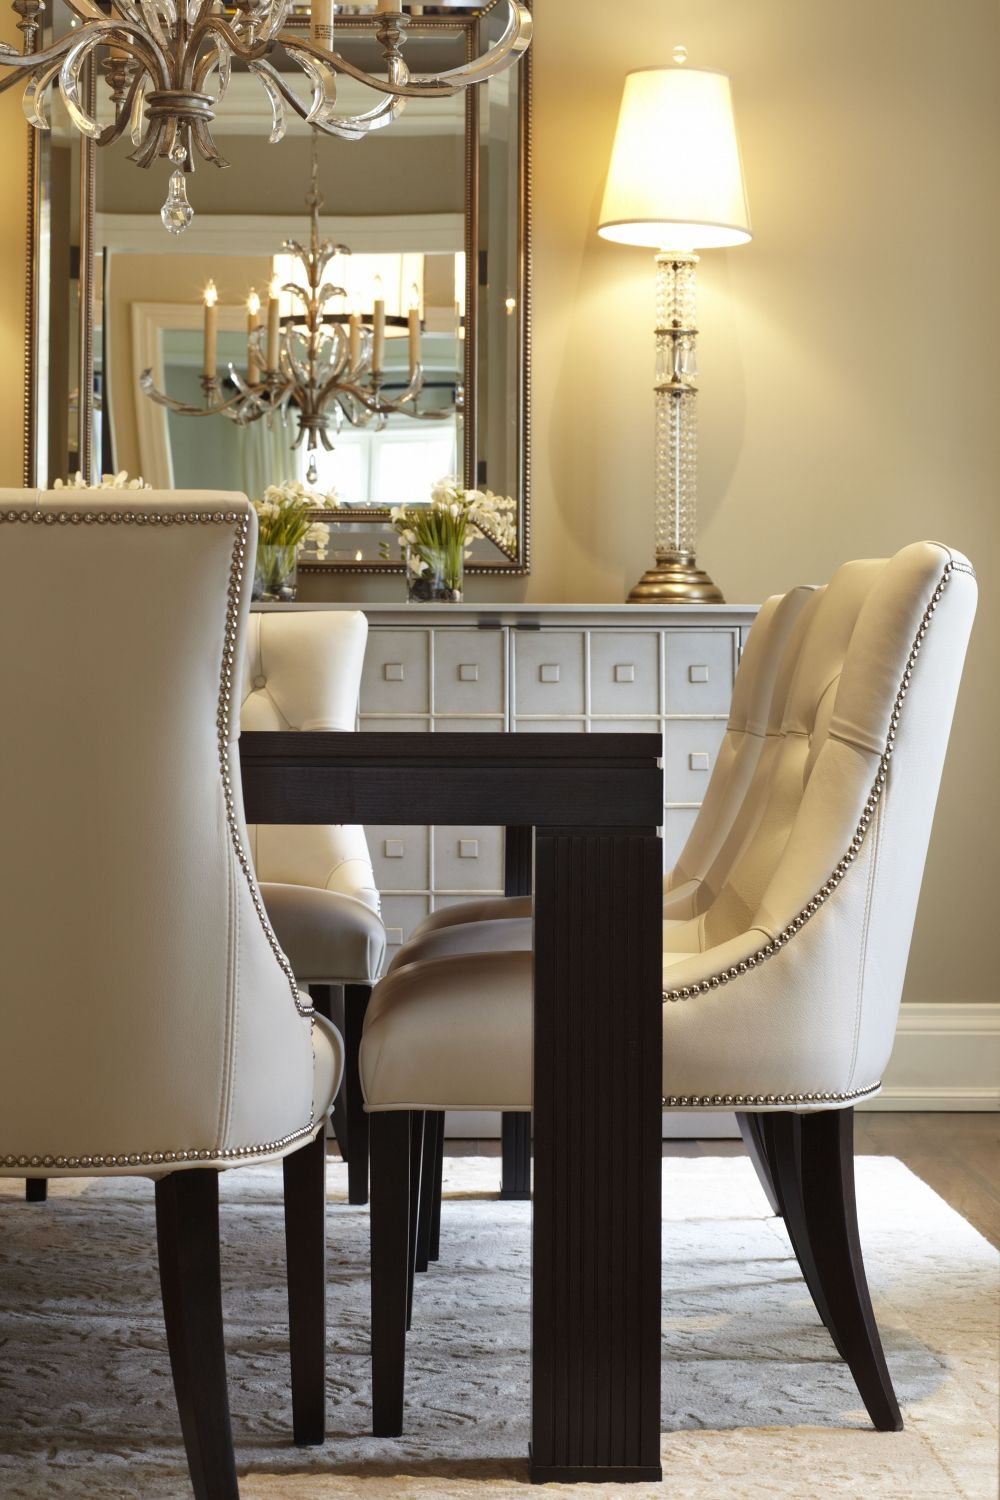 A Transitional Style Great Room By Parkyn Design Www Parkyndesign Com: Transitional Style Dining Room, Dining Room Table Set, Interior Design